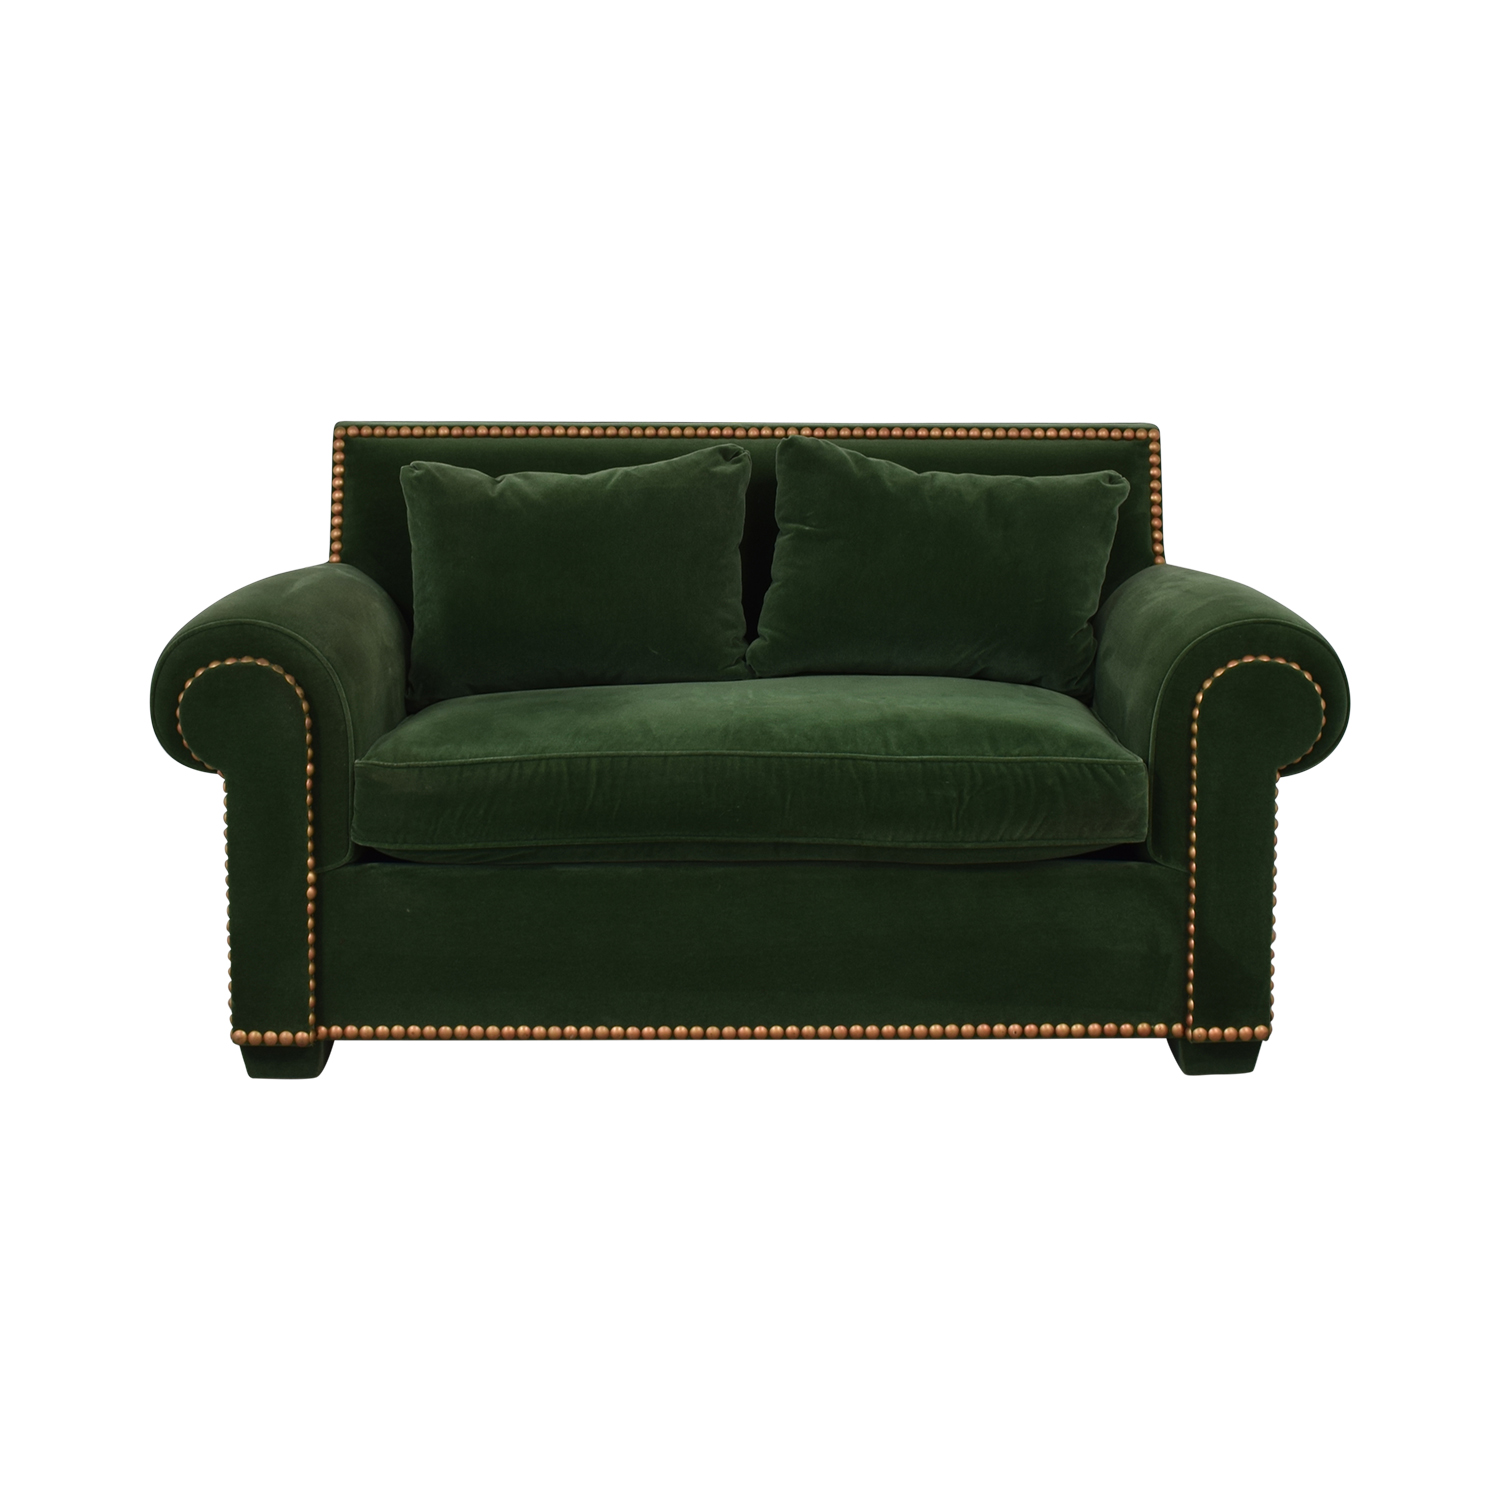 Green Nailhead Two-Cushion Loveseat for sale